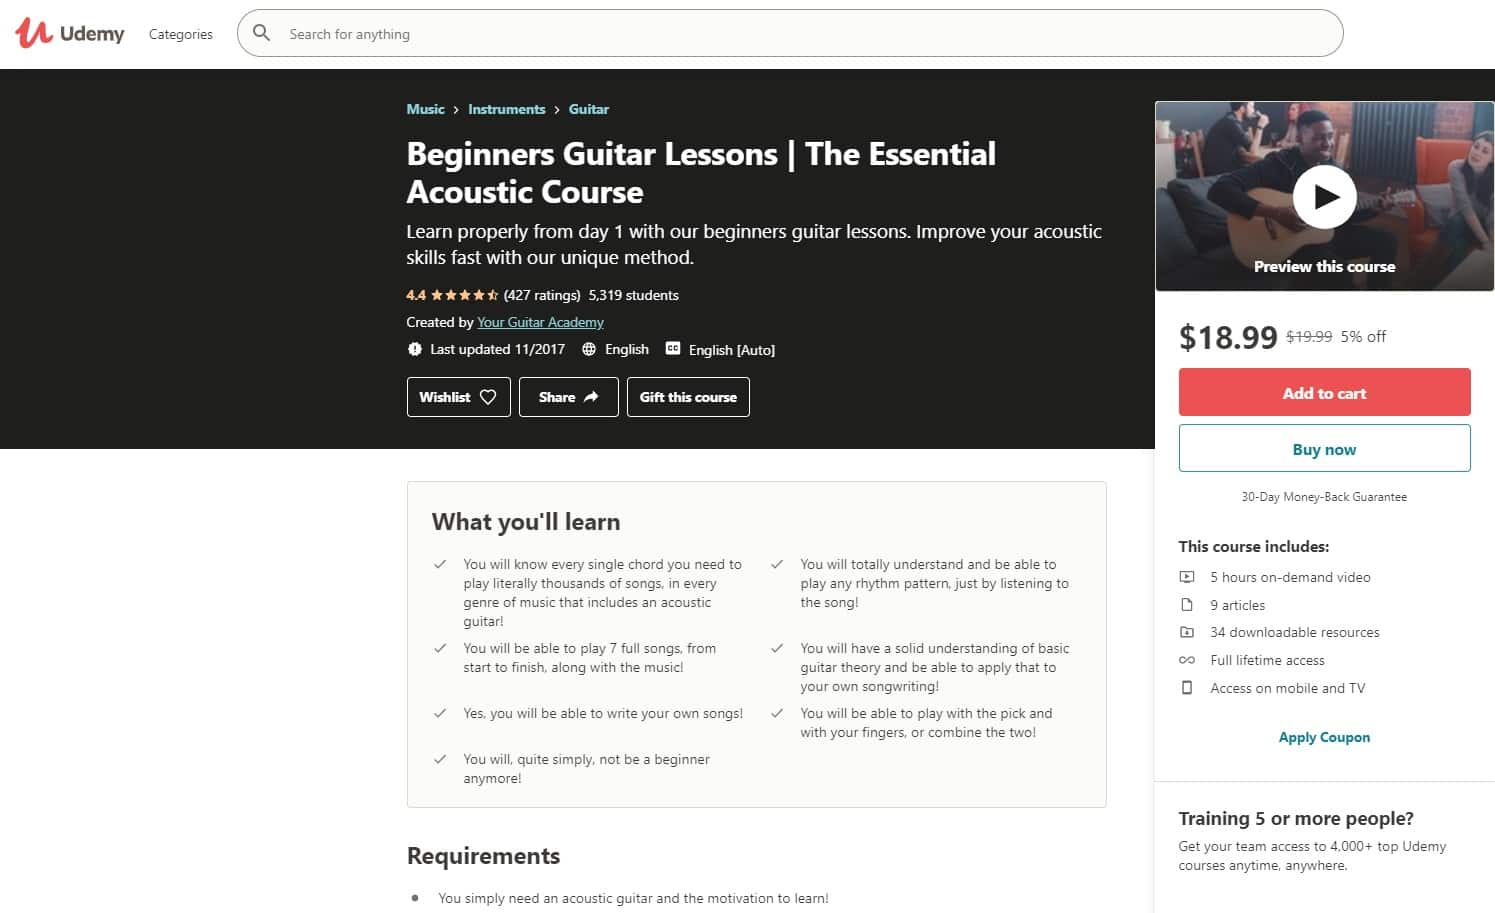 Udemy 5 Acoustic Guitar Lessons for Beginners